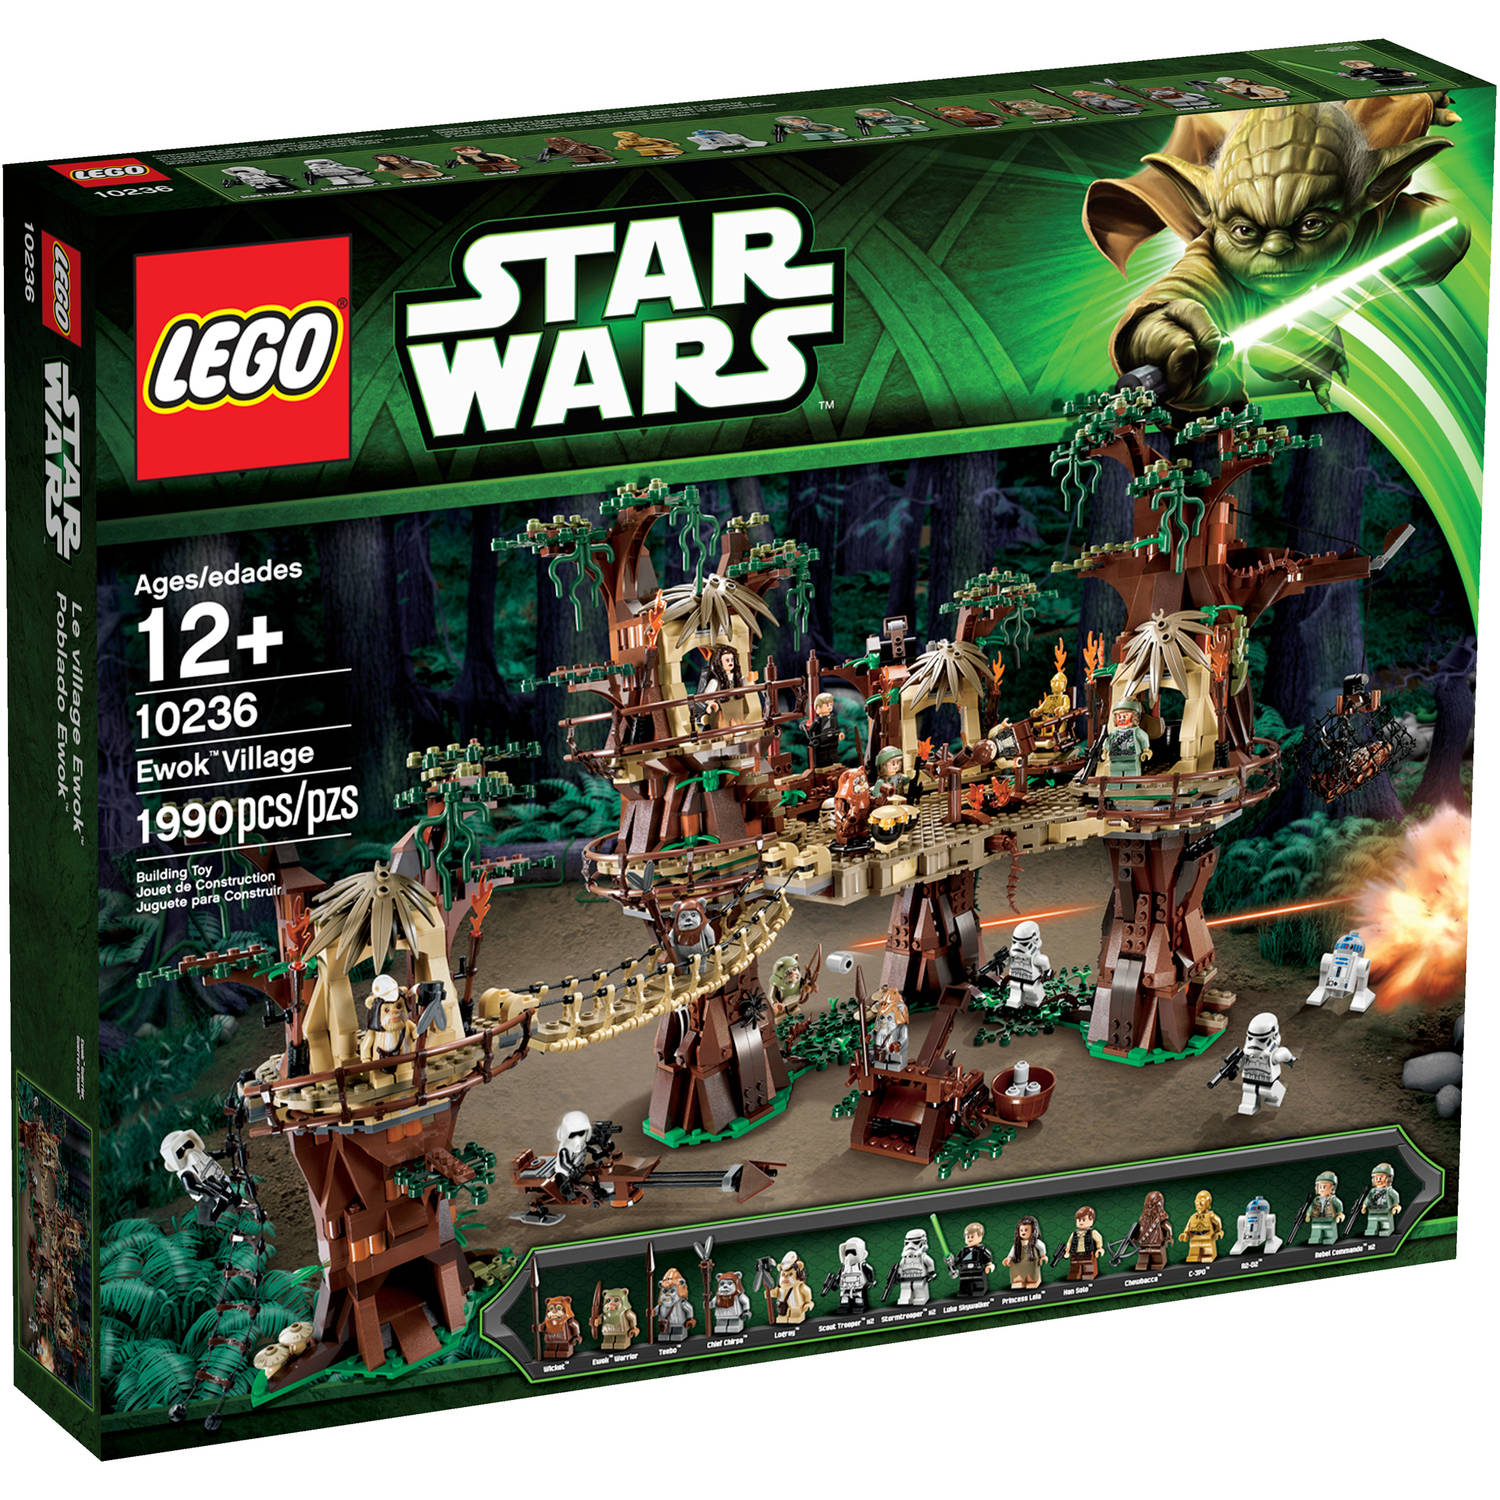 LEGO Star Wars Ewok Village Play Set